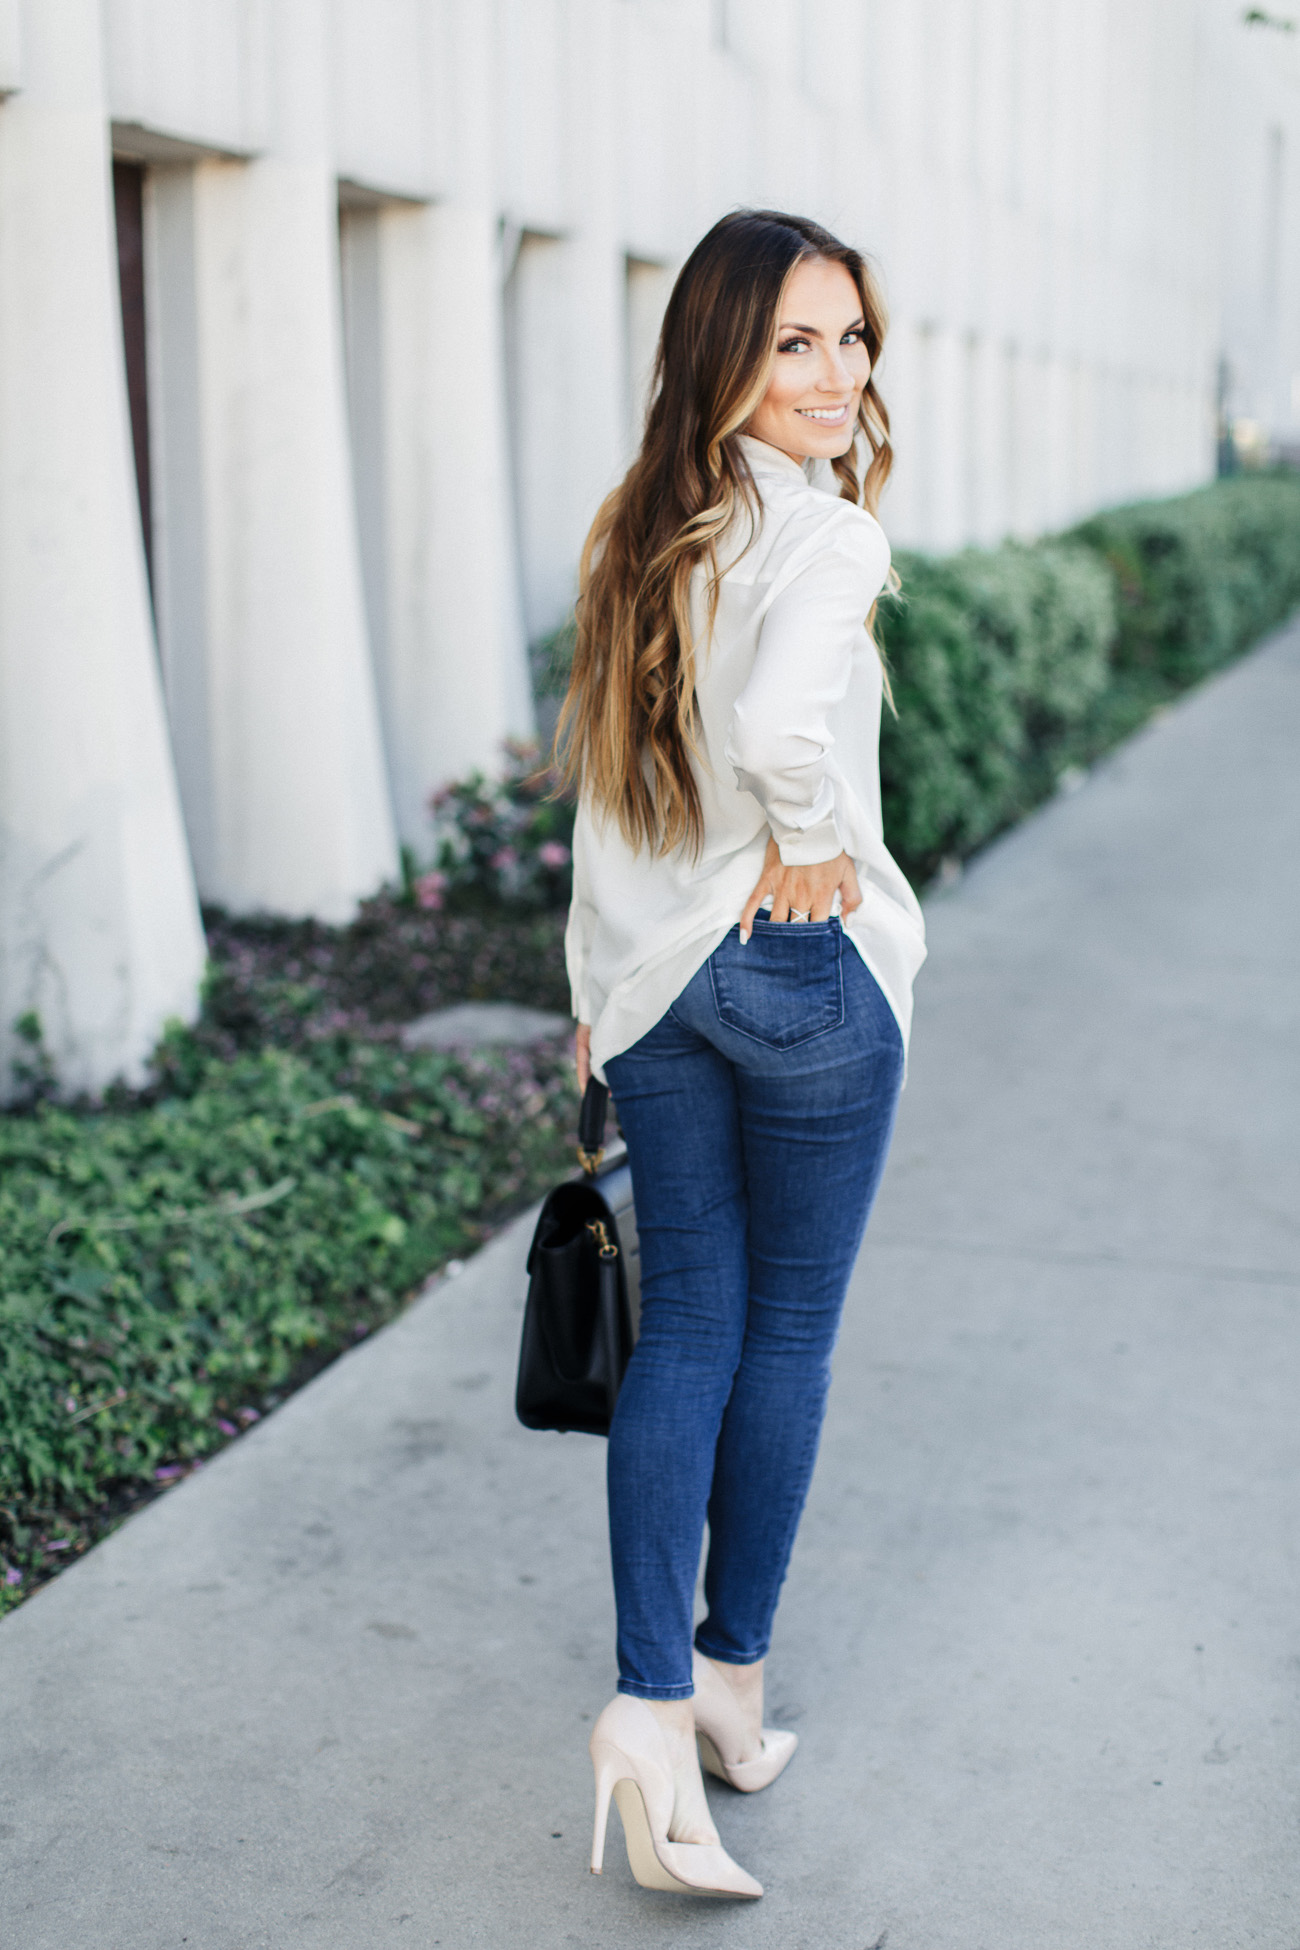 Closet Staple Pieces: white button-down, J. Crew jeans, Zac Posen bag, statement necklace and nude heels. Angela Lanter